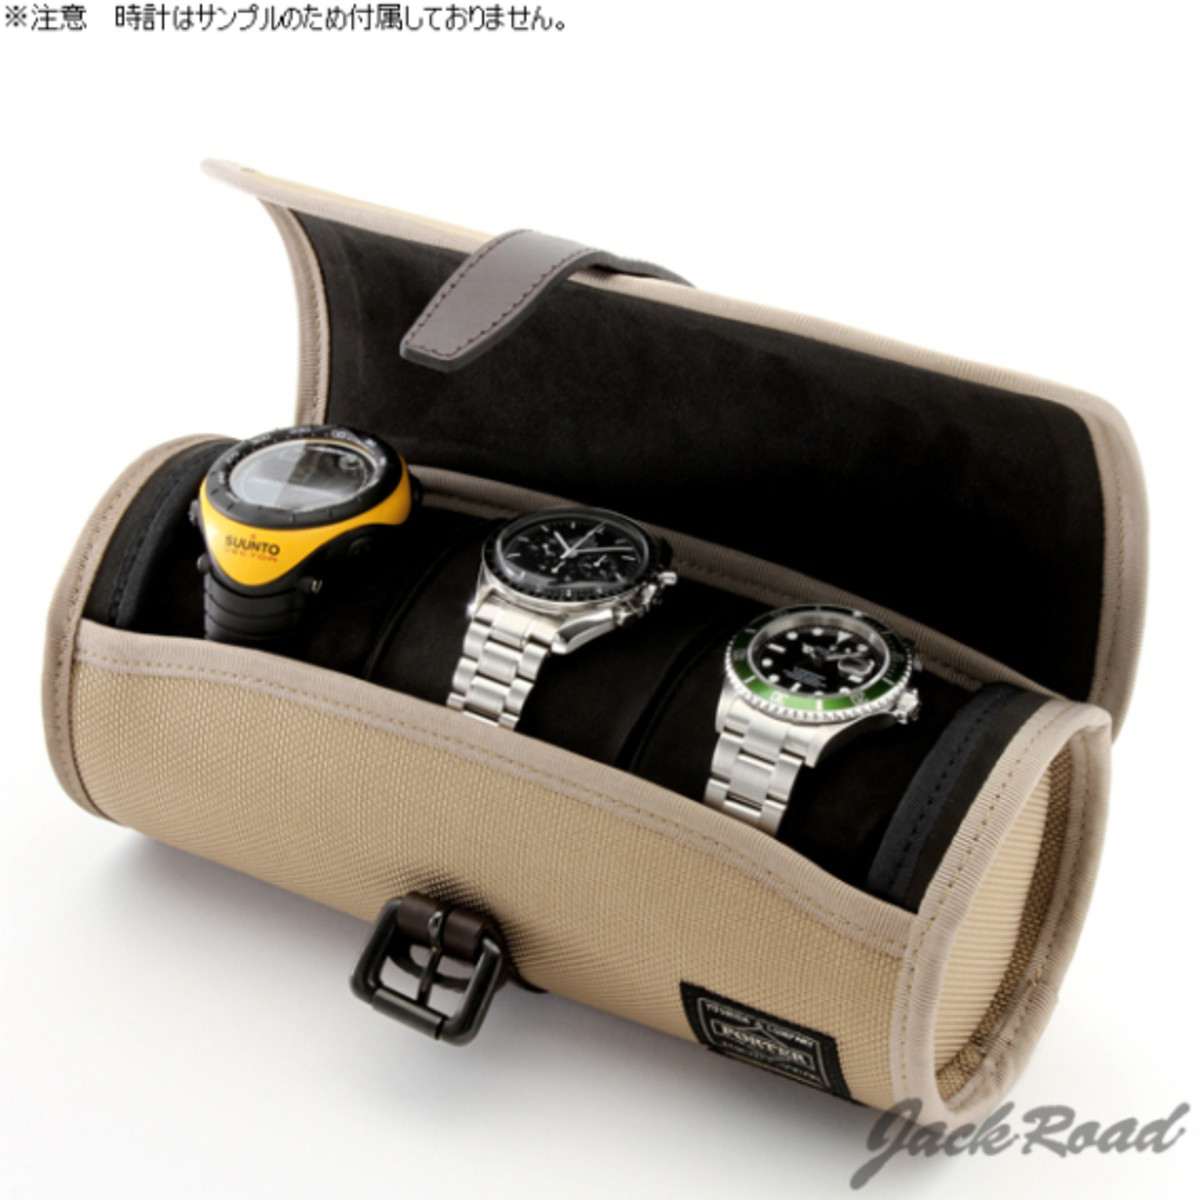 jack-road-porter-watch-carrying-case-19